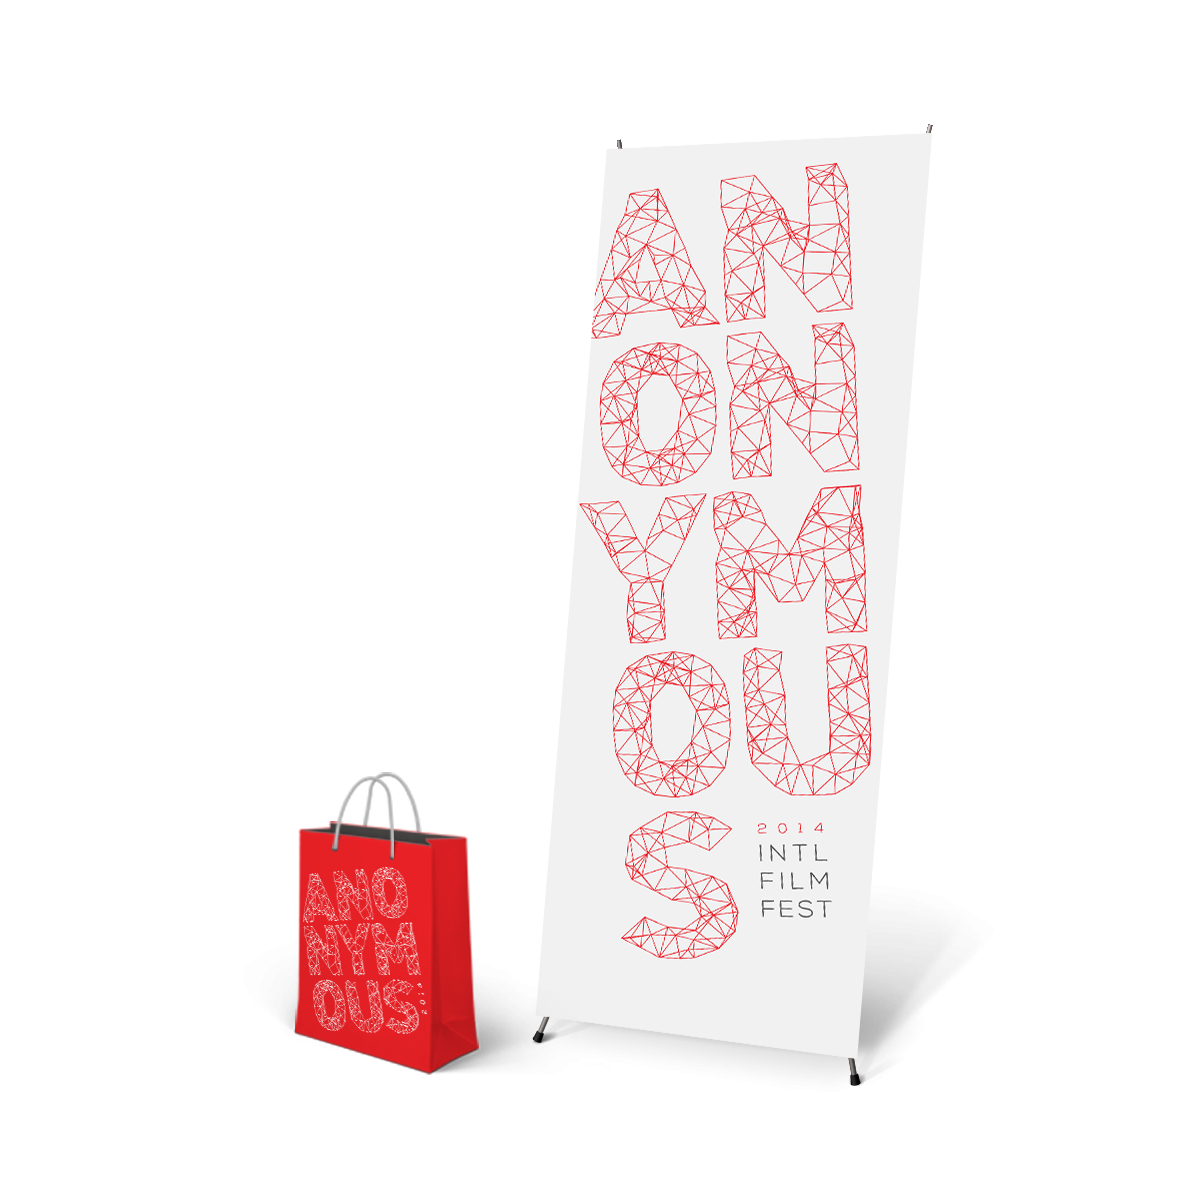 Photo of giveaway bag and floor banner.